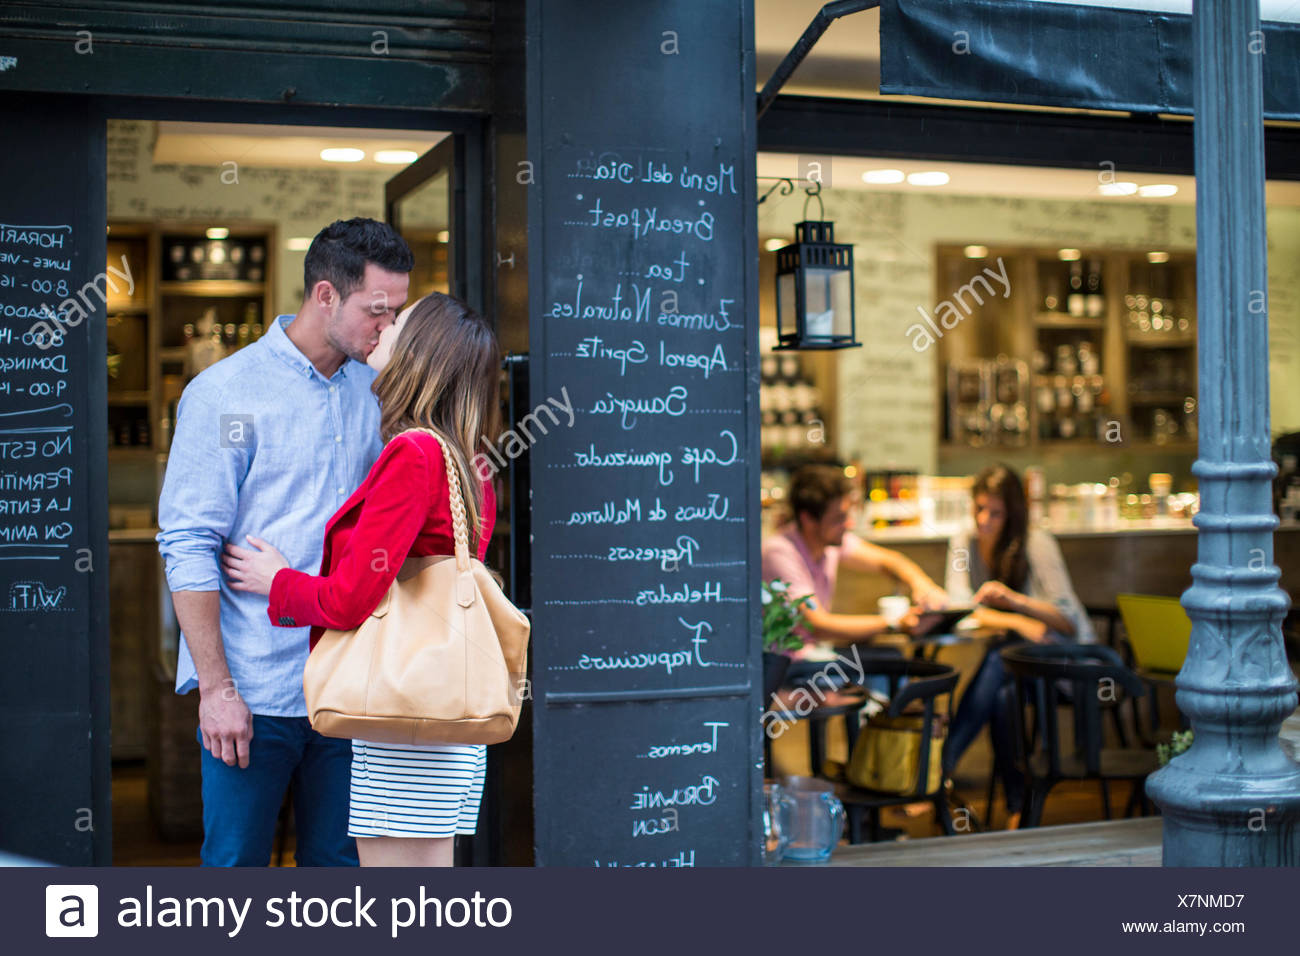 Romantic couple kissing outside cafe - Stock Image